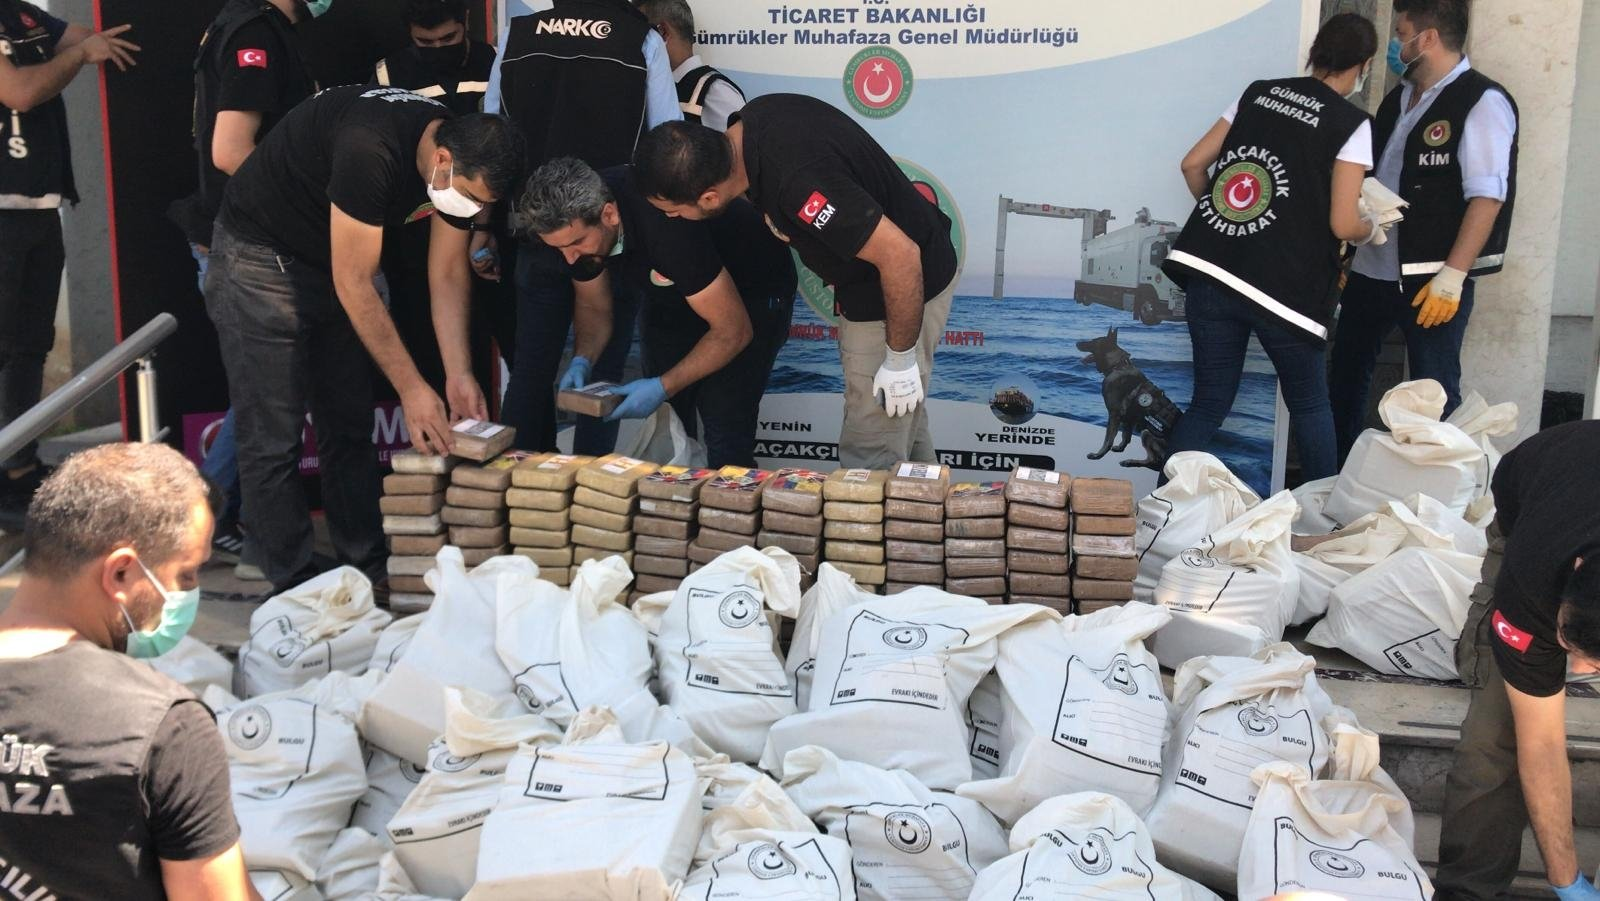 Police and customs officers sort the seized drugs in Mersin, Turkey, June 16, 2021. (AA PHOTO)